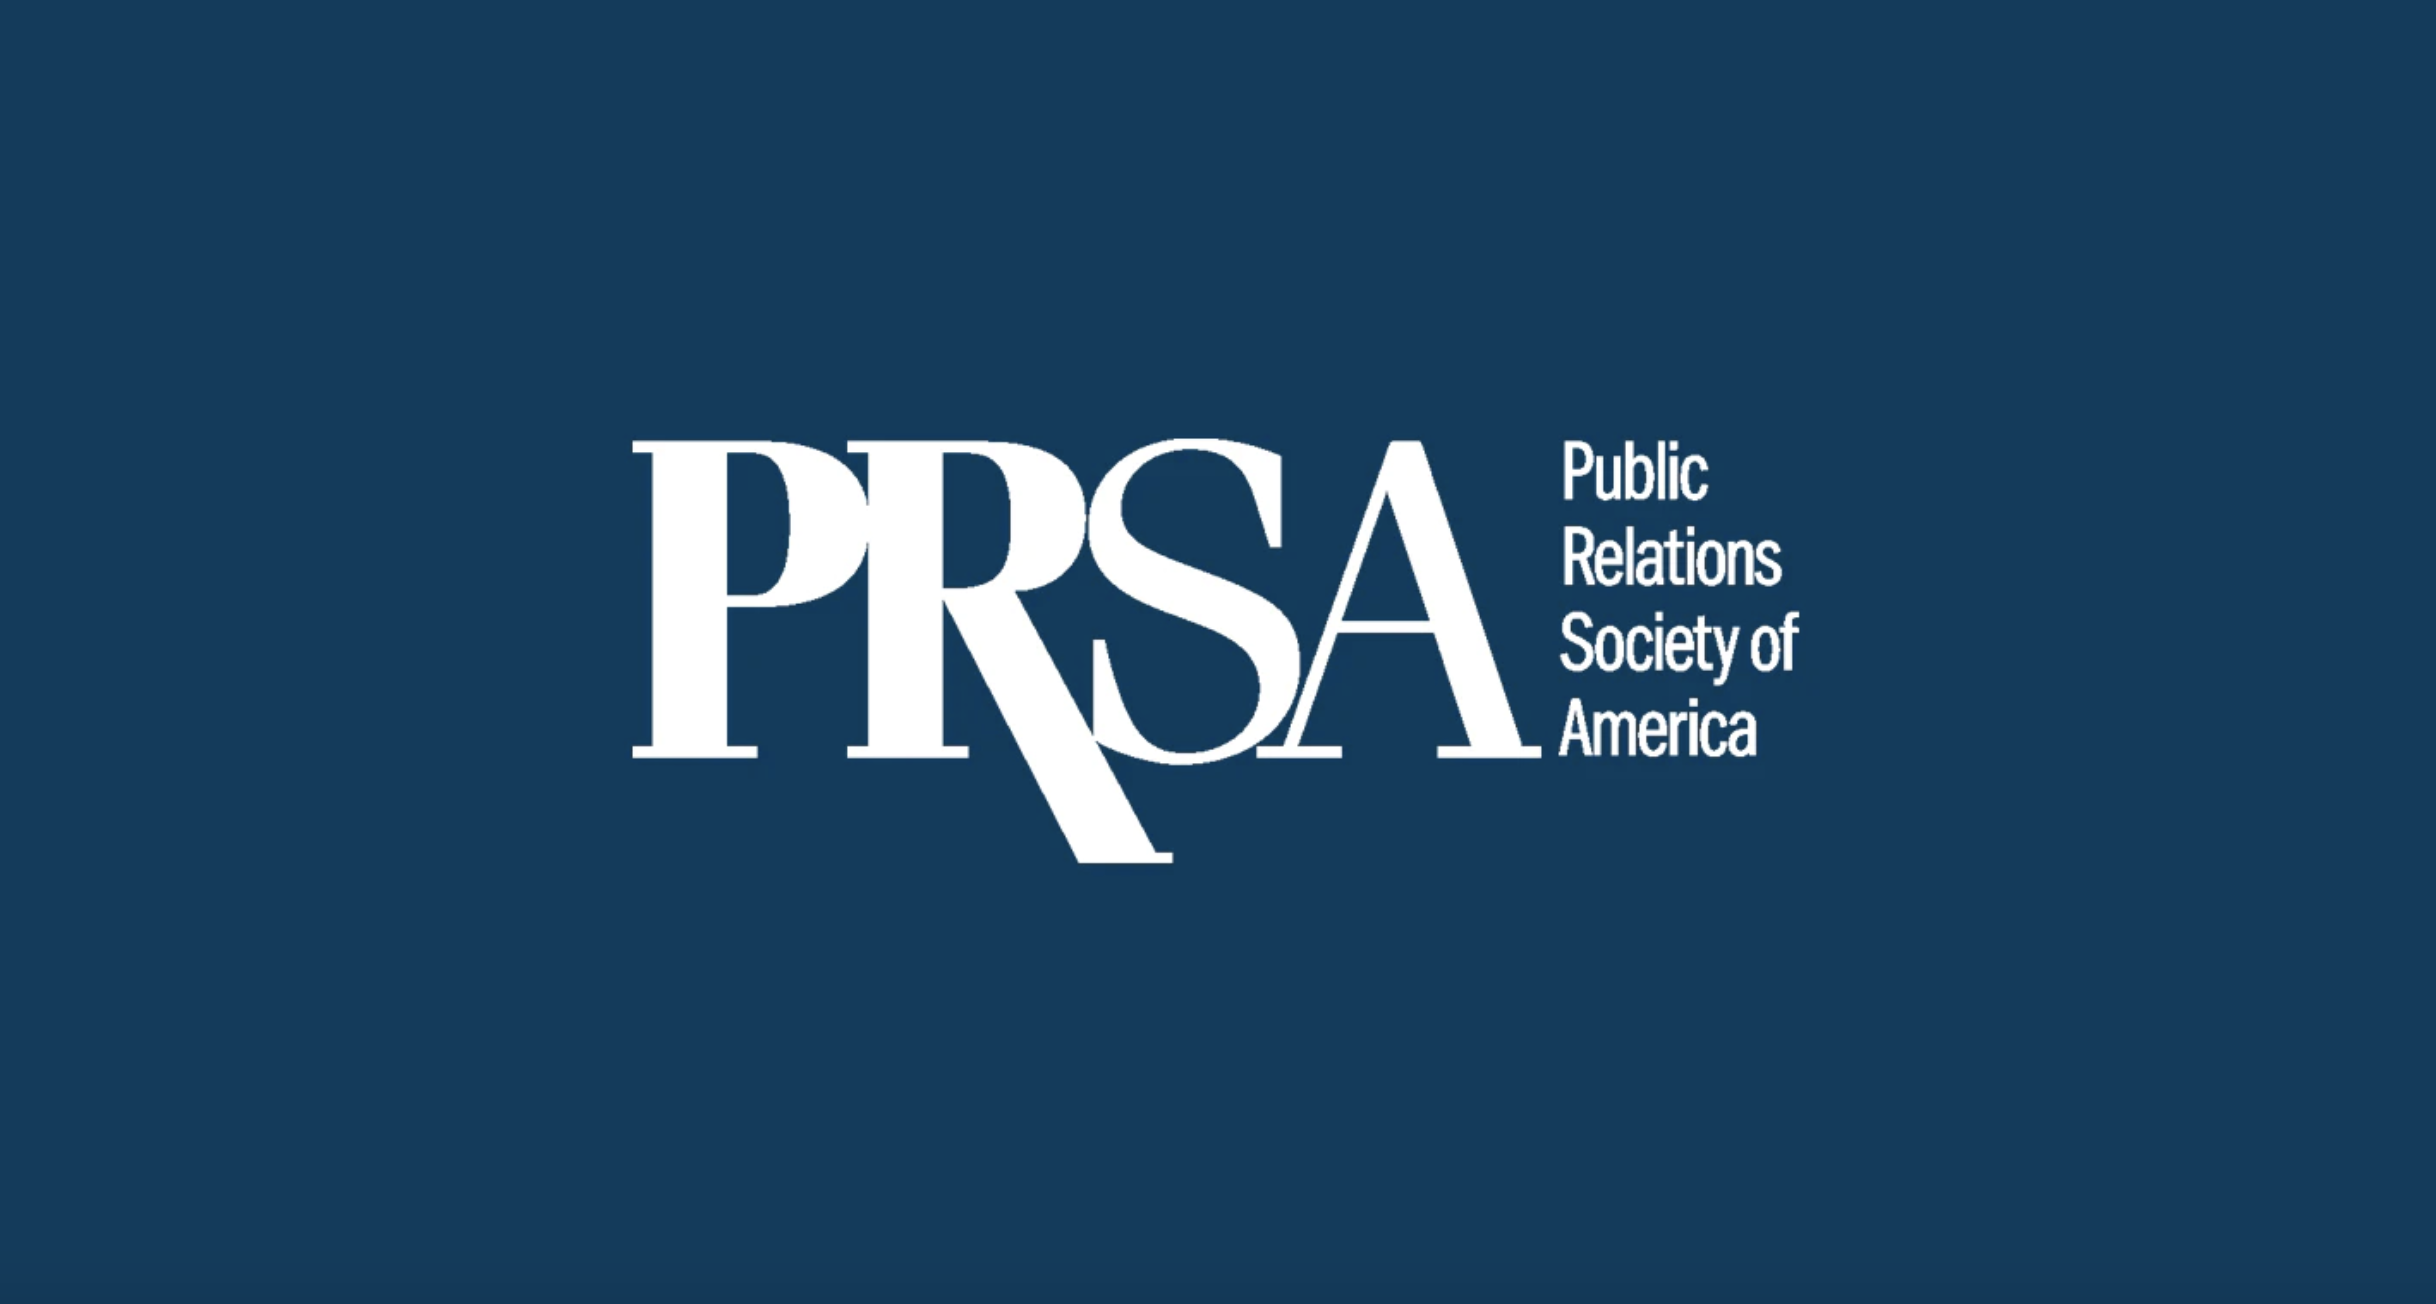 Public Relations Society of America